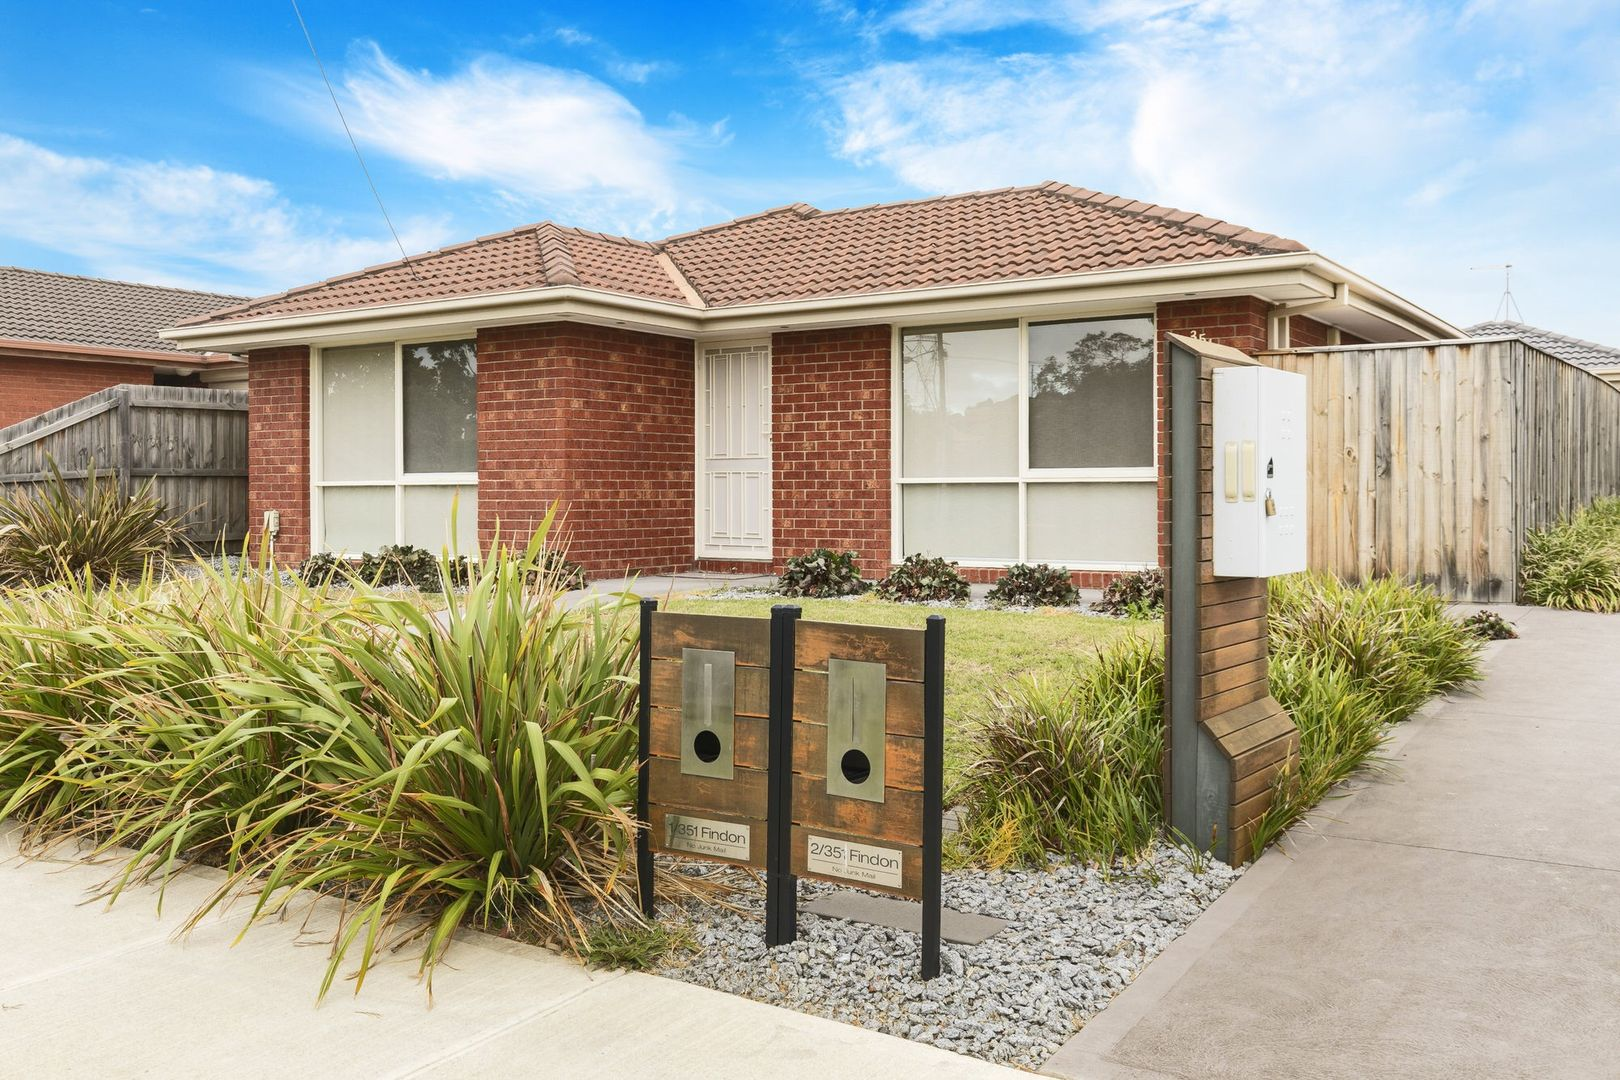 1/351 Findon  Road, Epping VIC 3076, Image 0